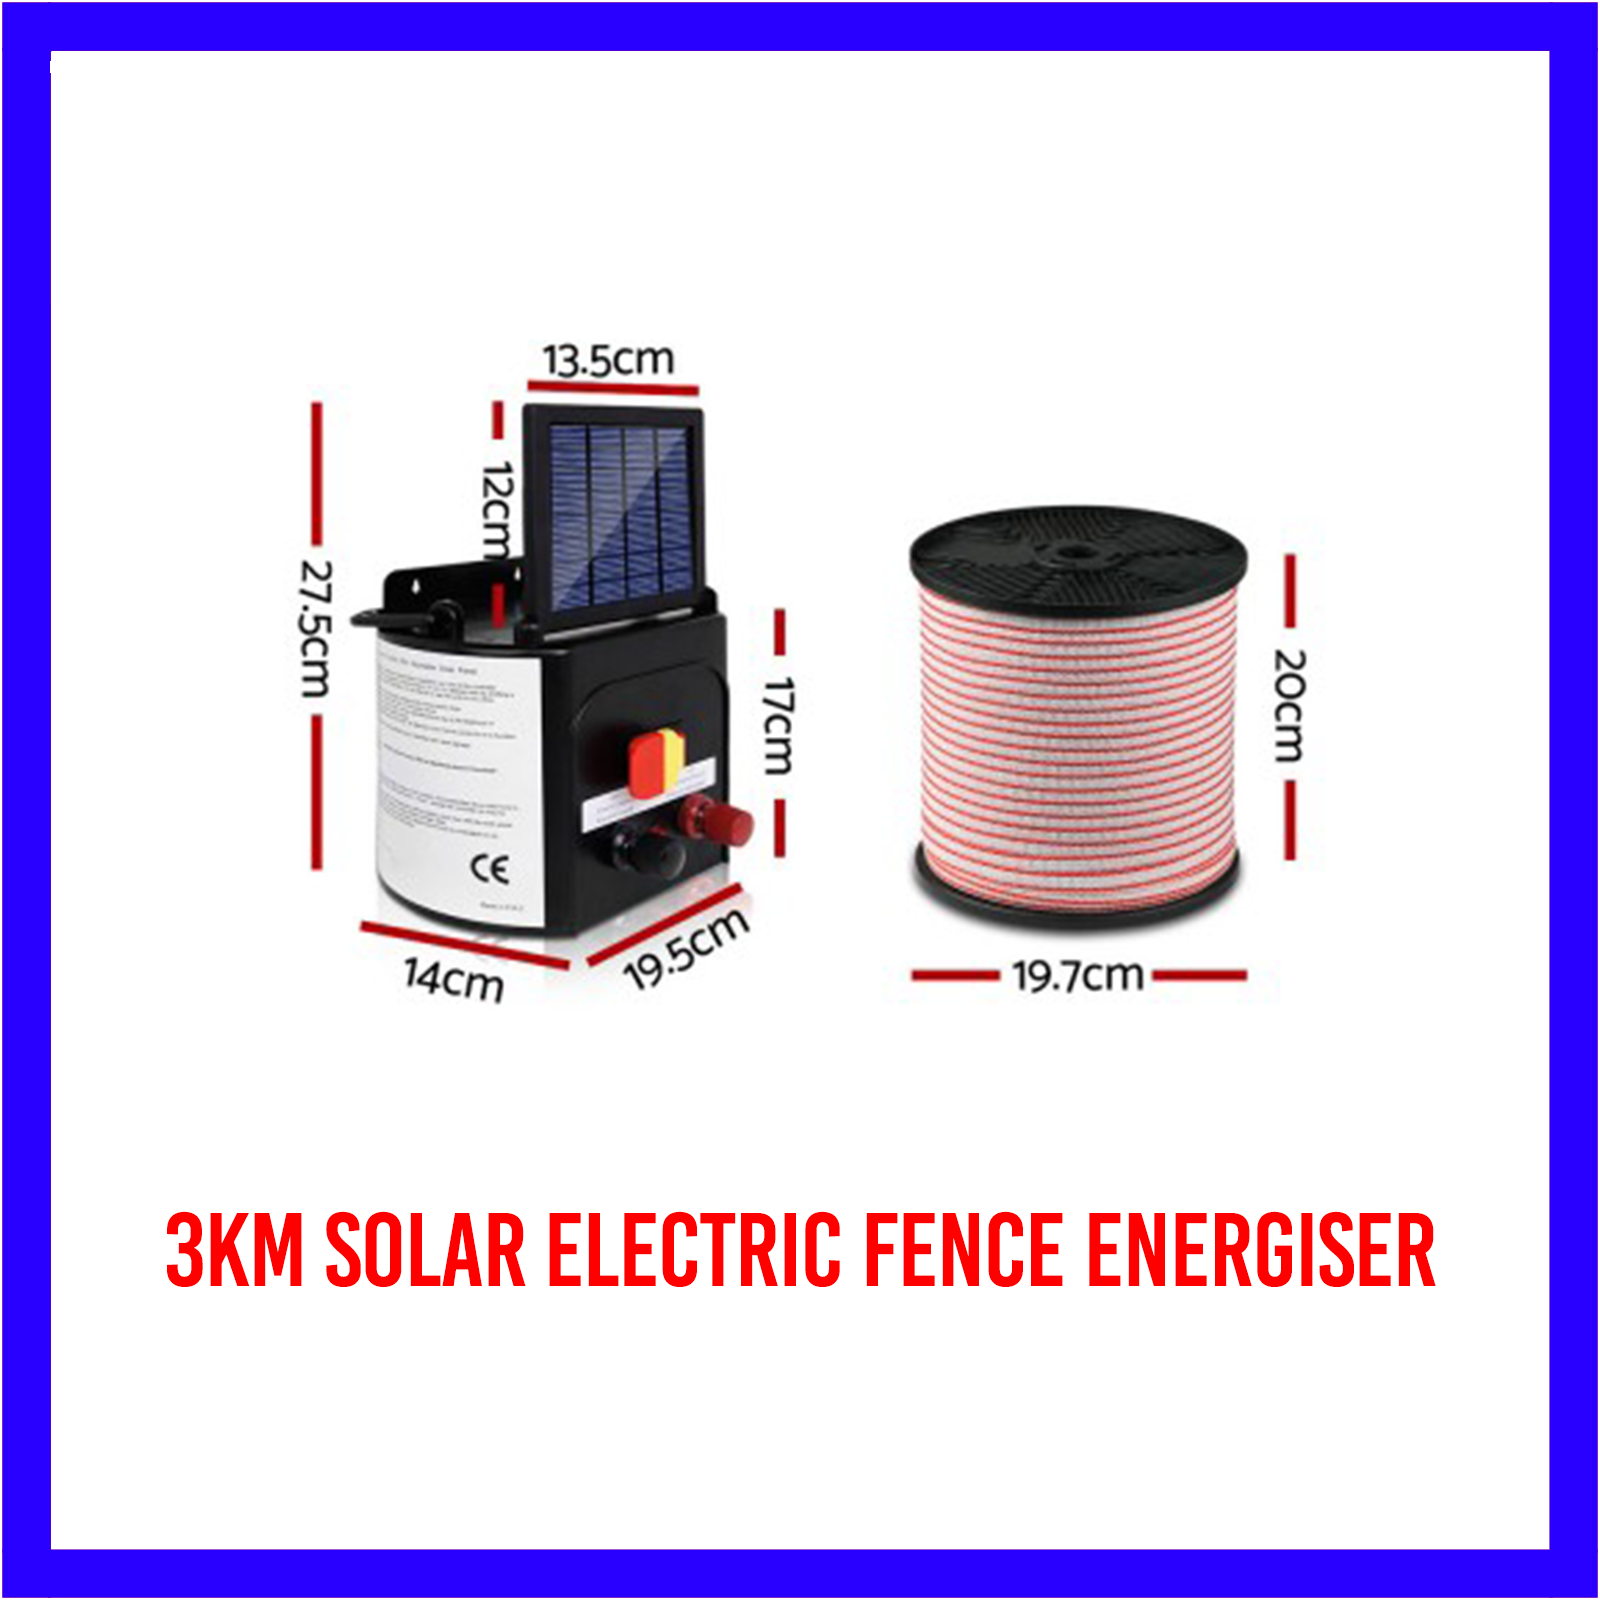 3km Solar Electric Fence Energiser/Charger Kit 400m Tape 25 Insulators and Sign 3